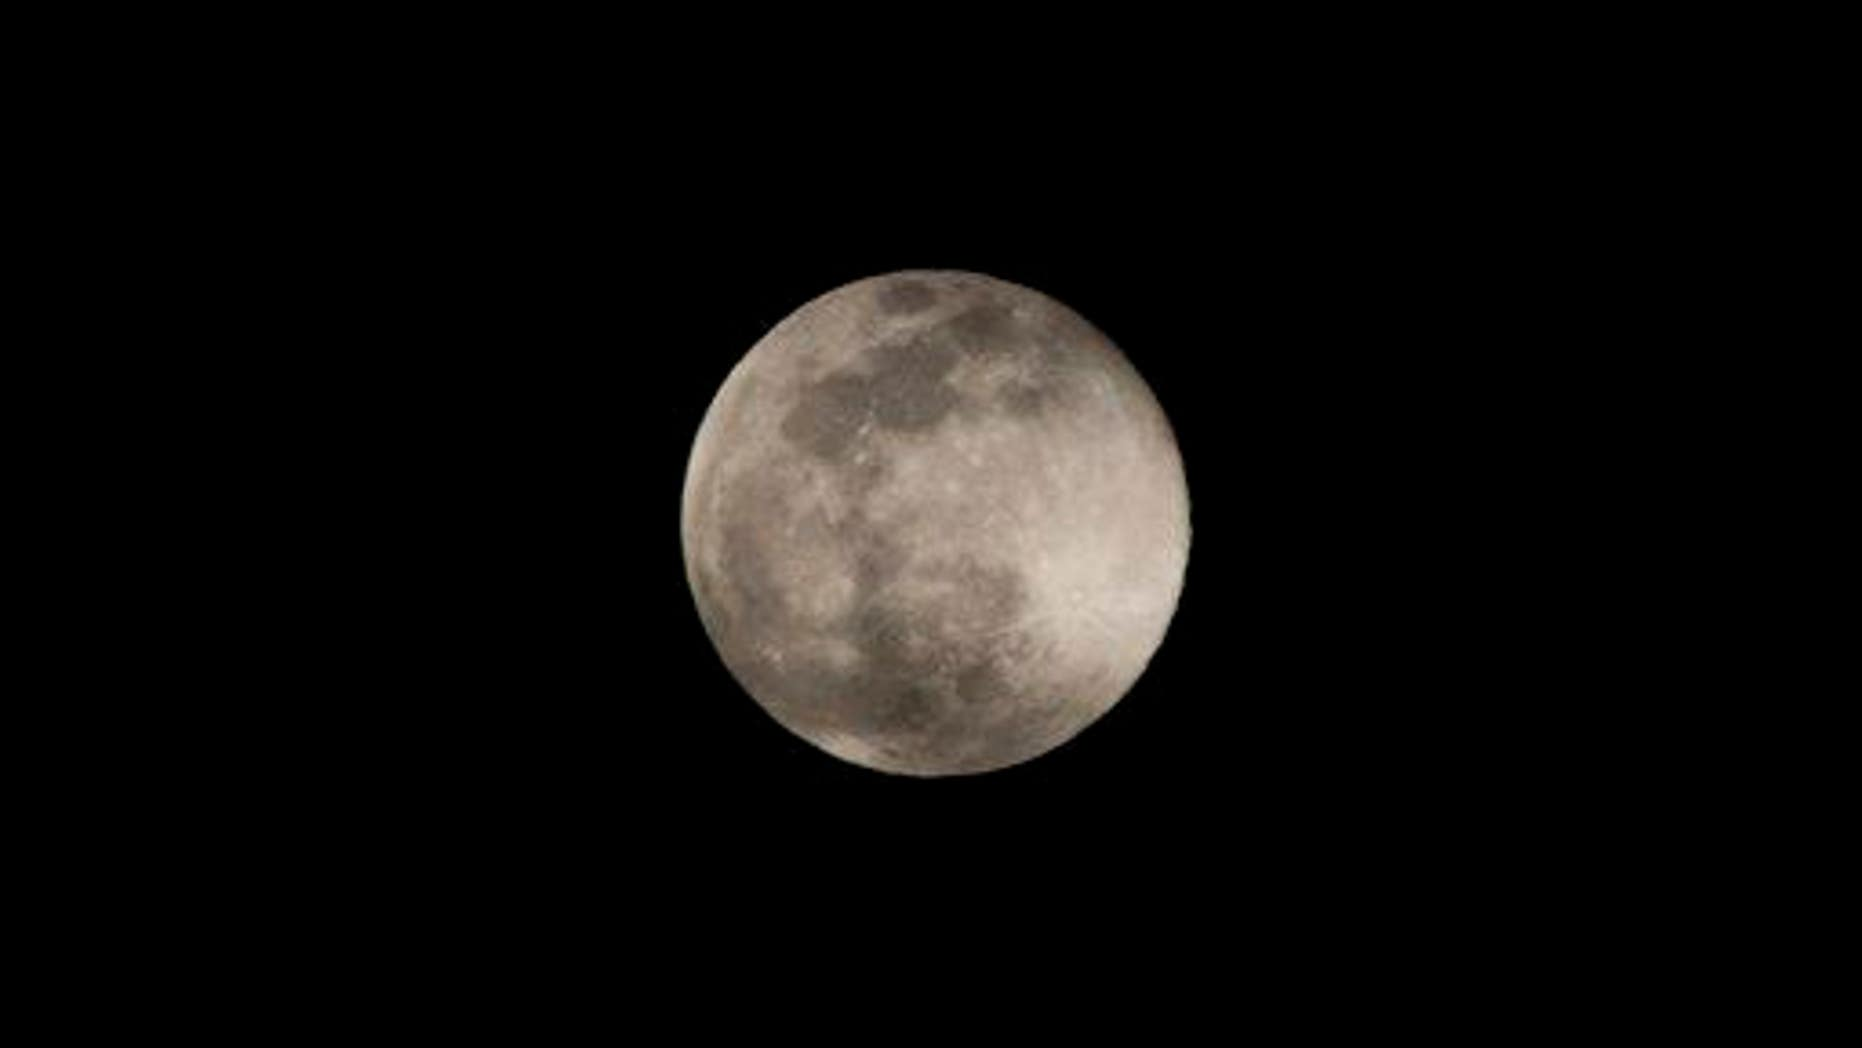 A full moon. Any fossils up there?